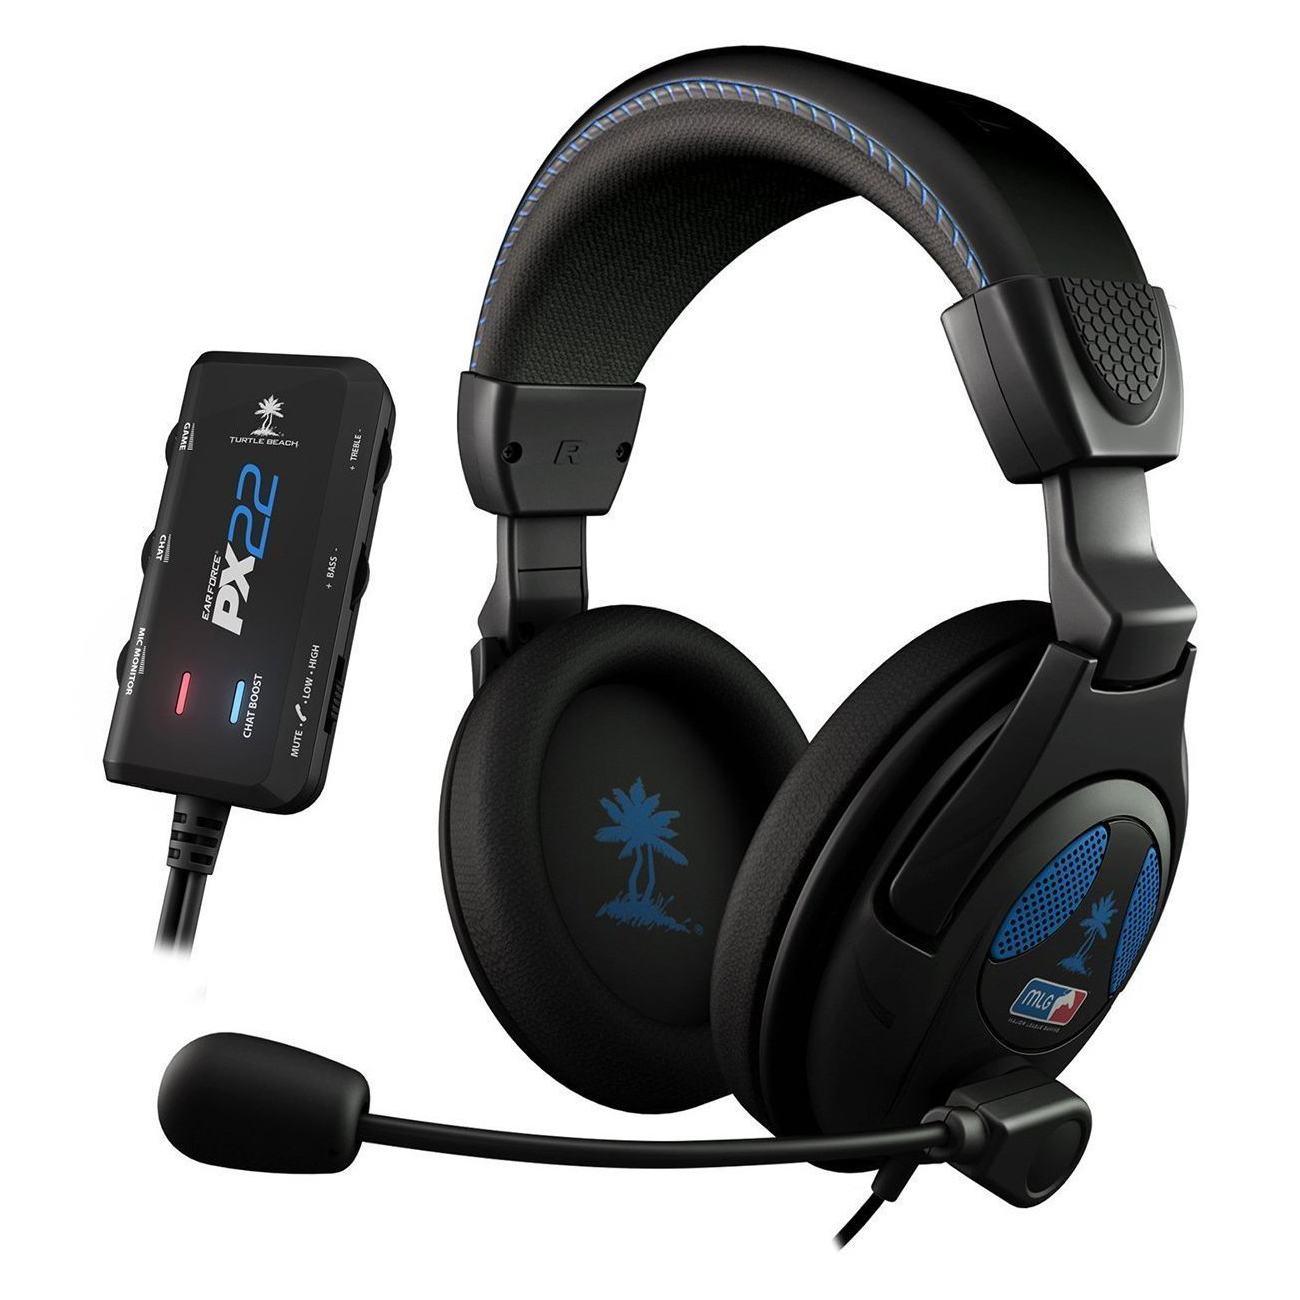 turtle beach px24 vs px22 is it worth upgrading from the. Black Bedroom Furniture Sets. Home Design Ideas